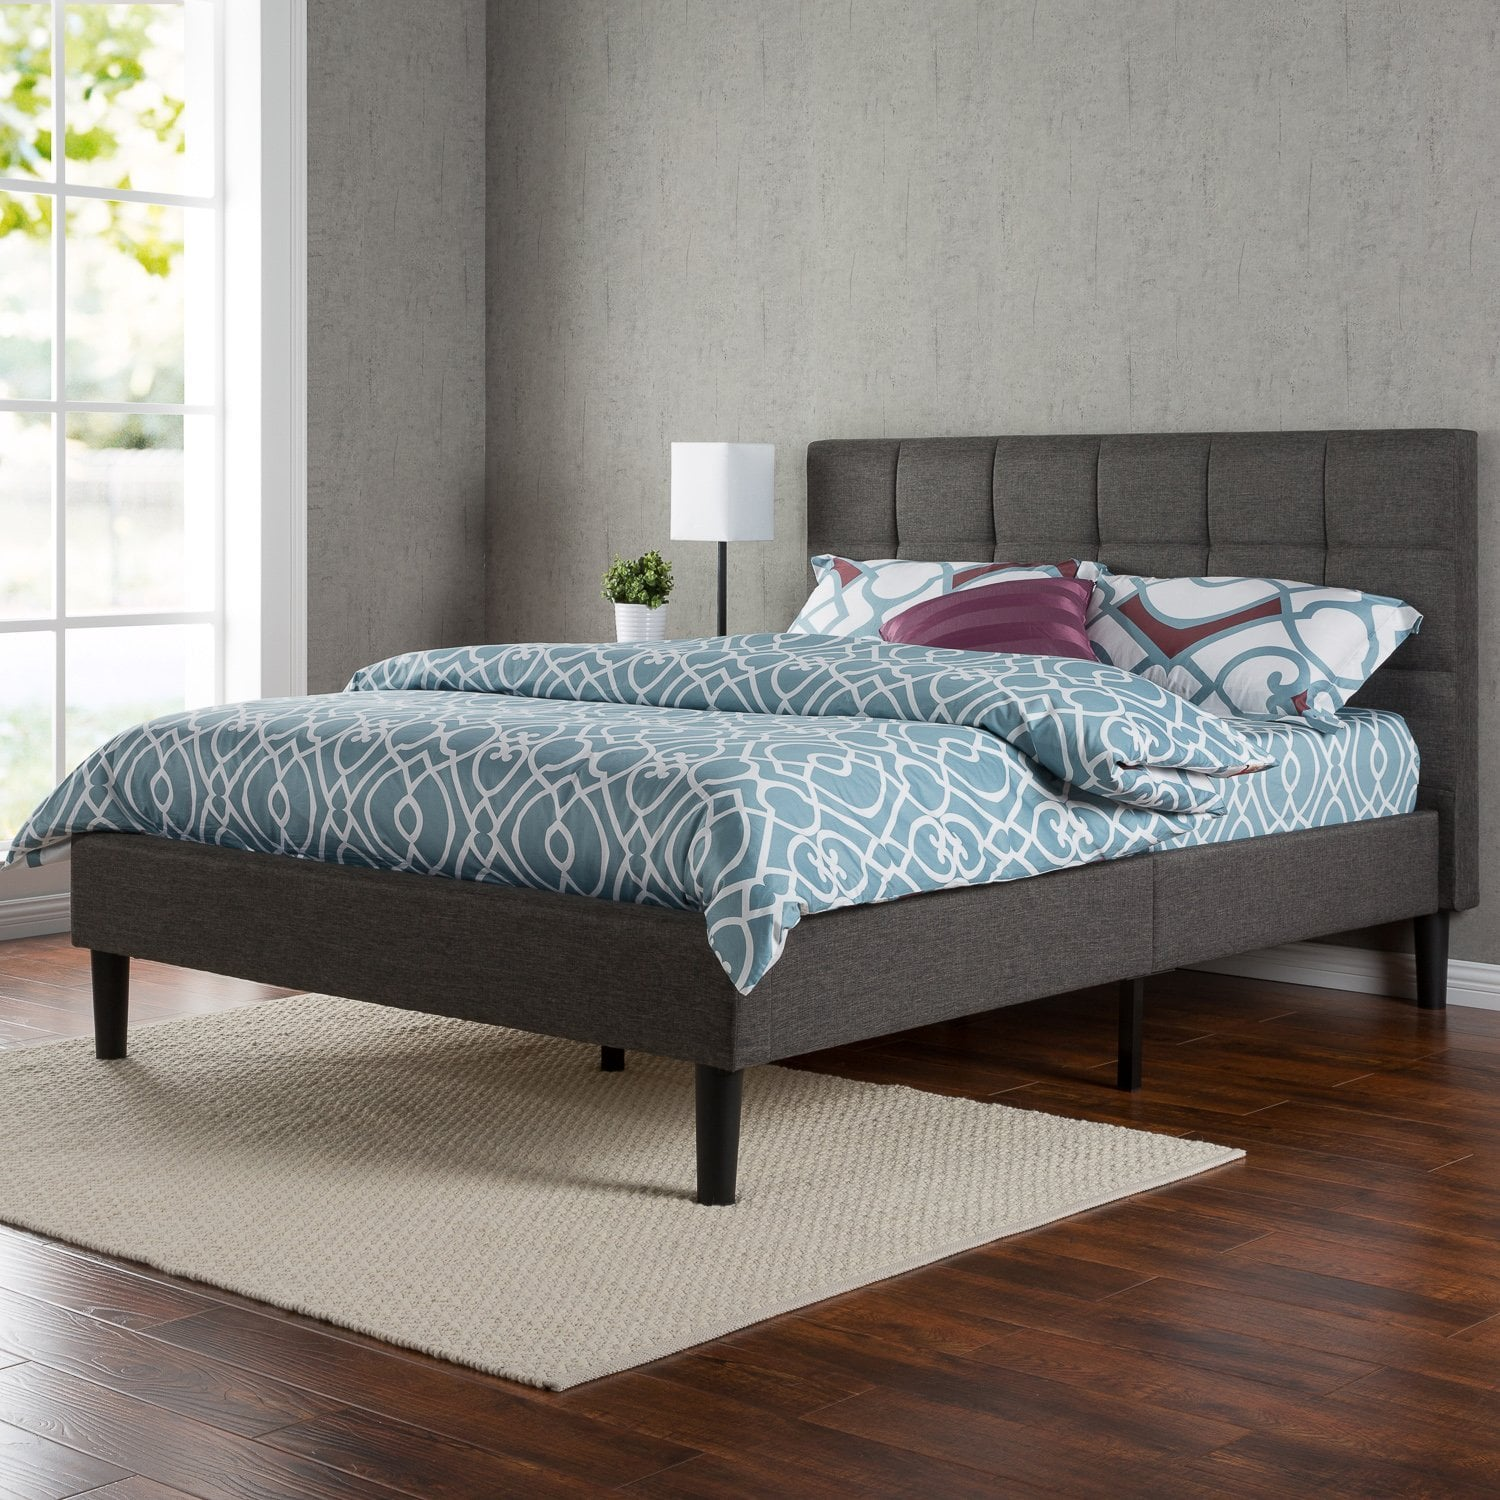 Cheap bed frame popsugar home for Affordable bedroom furniture canada